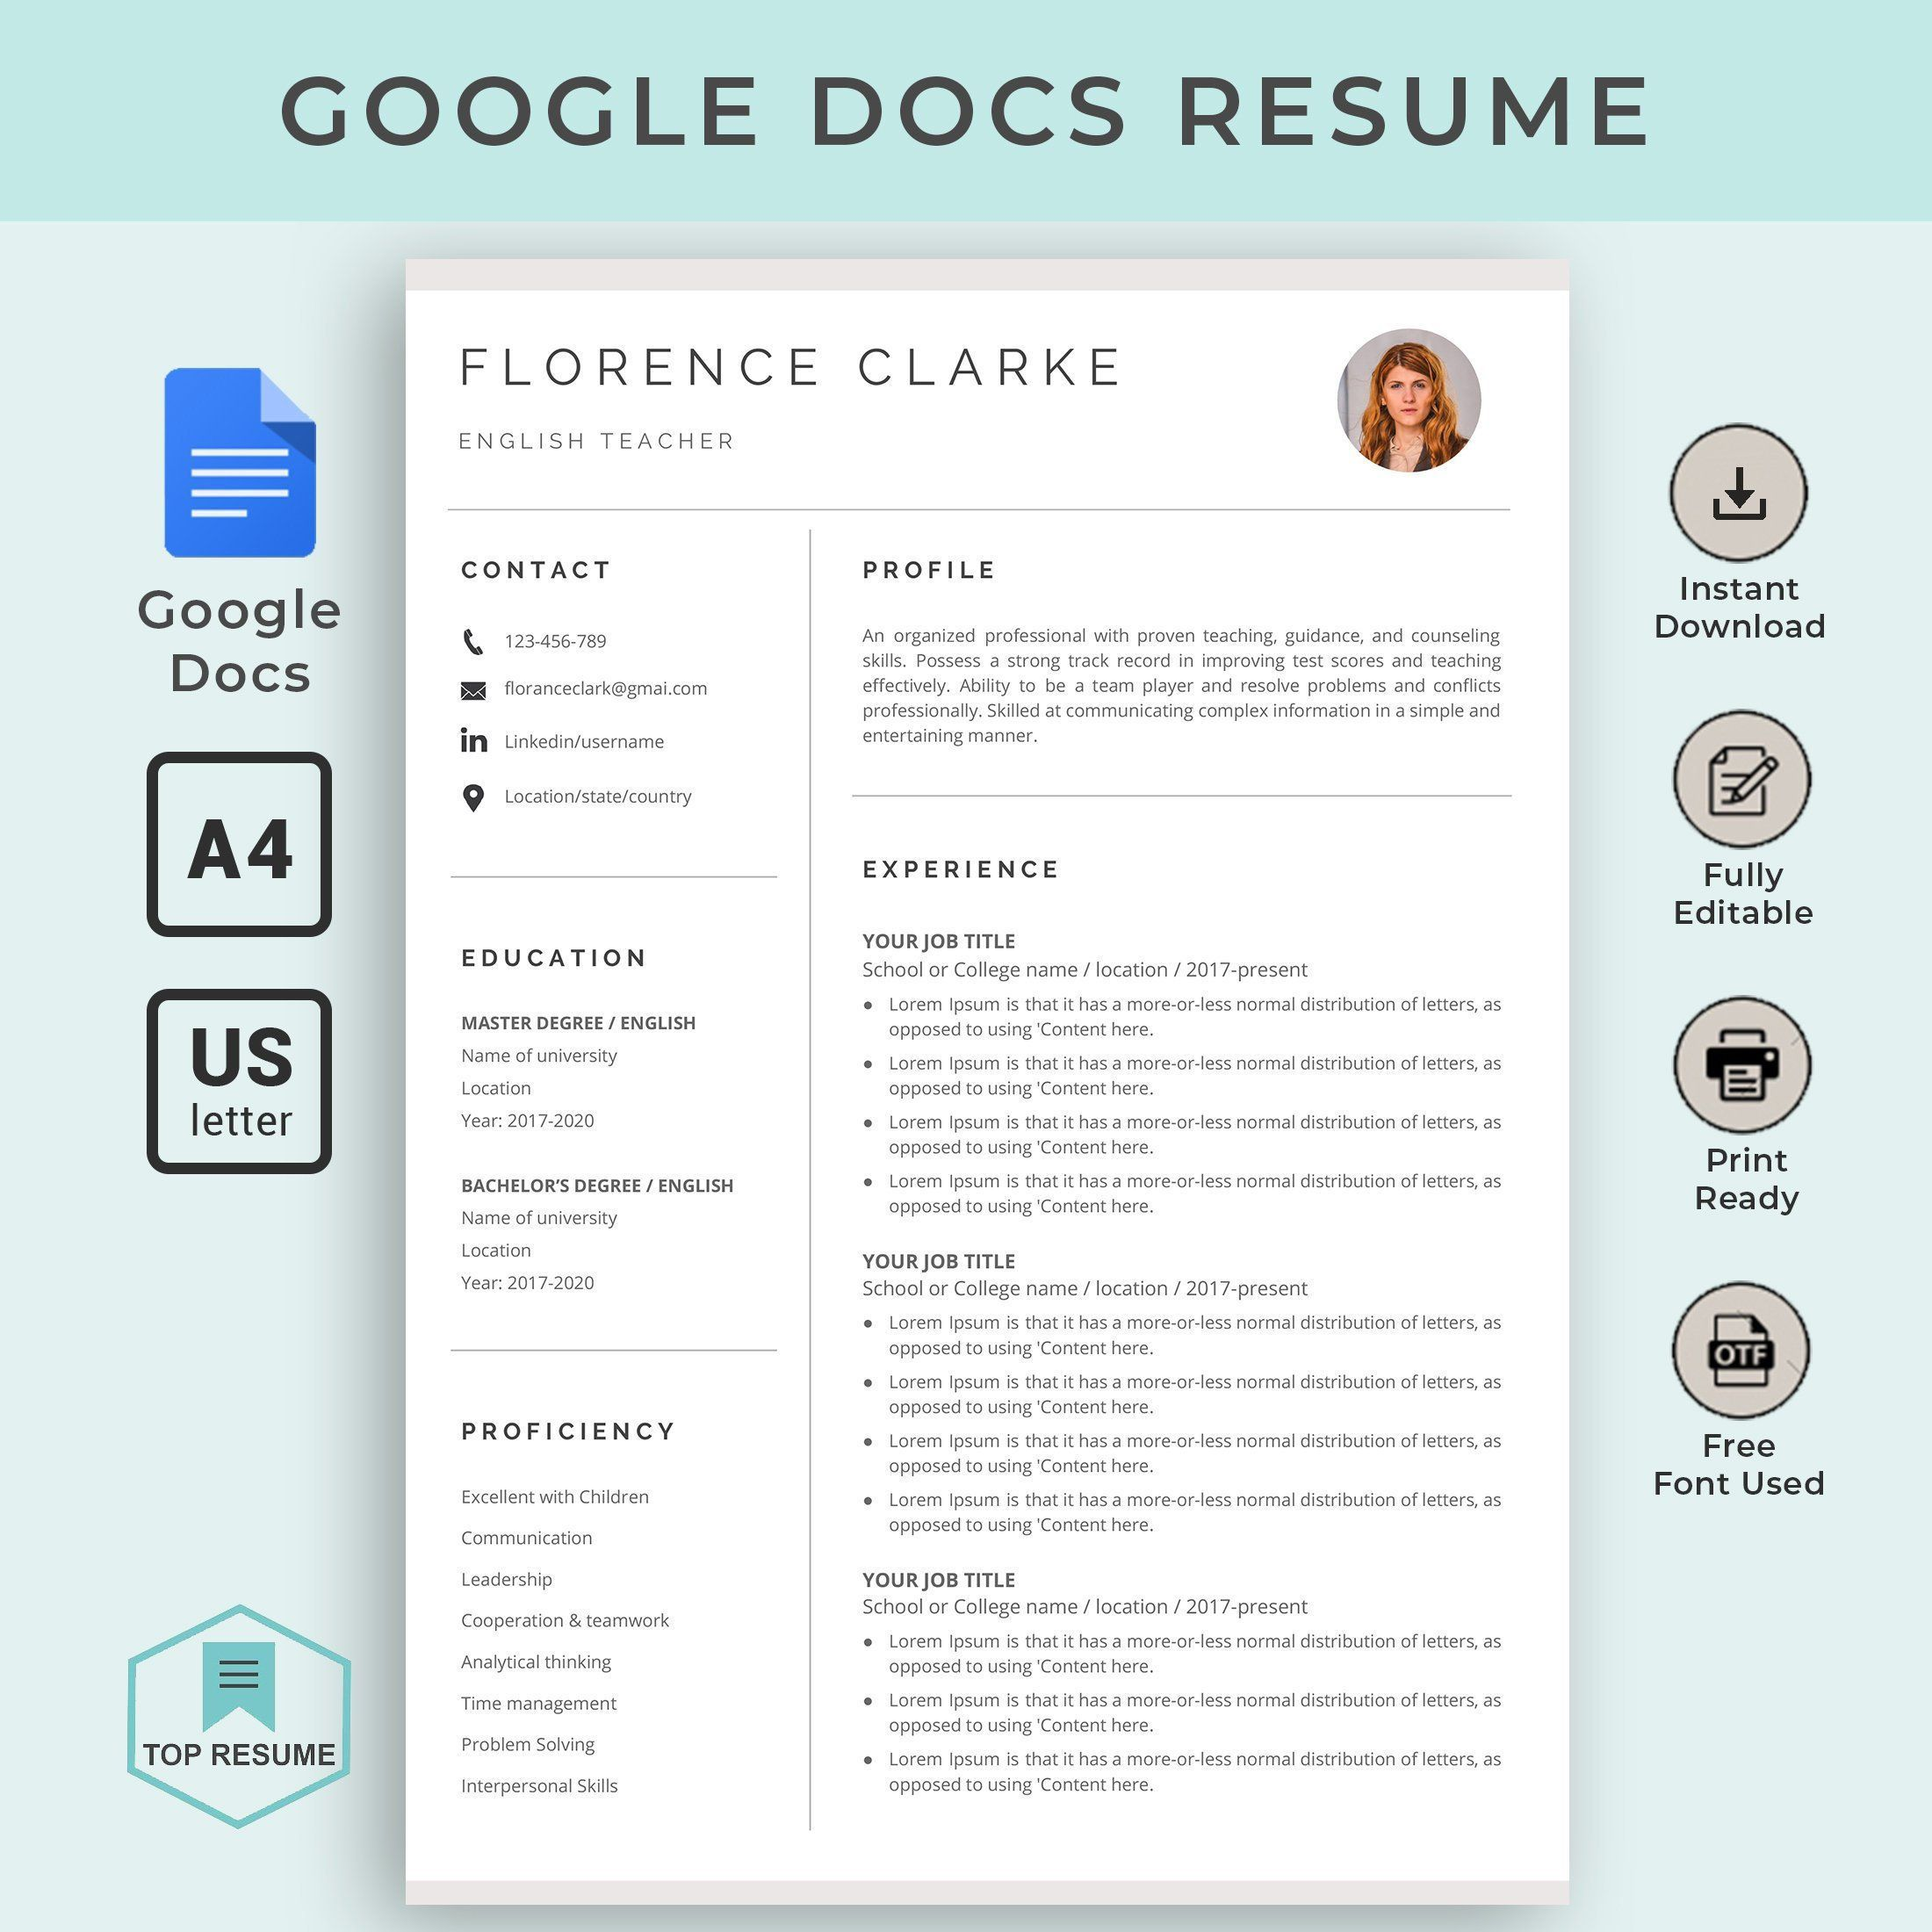 000 Archaicawful Entry Level Resume Template Google Doc Example  DocsFull